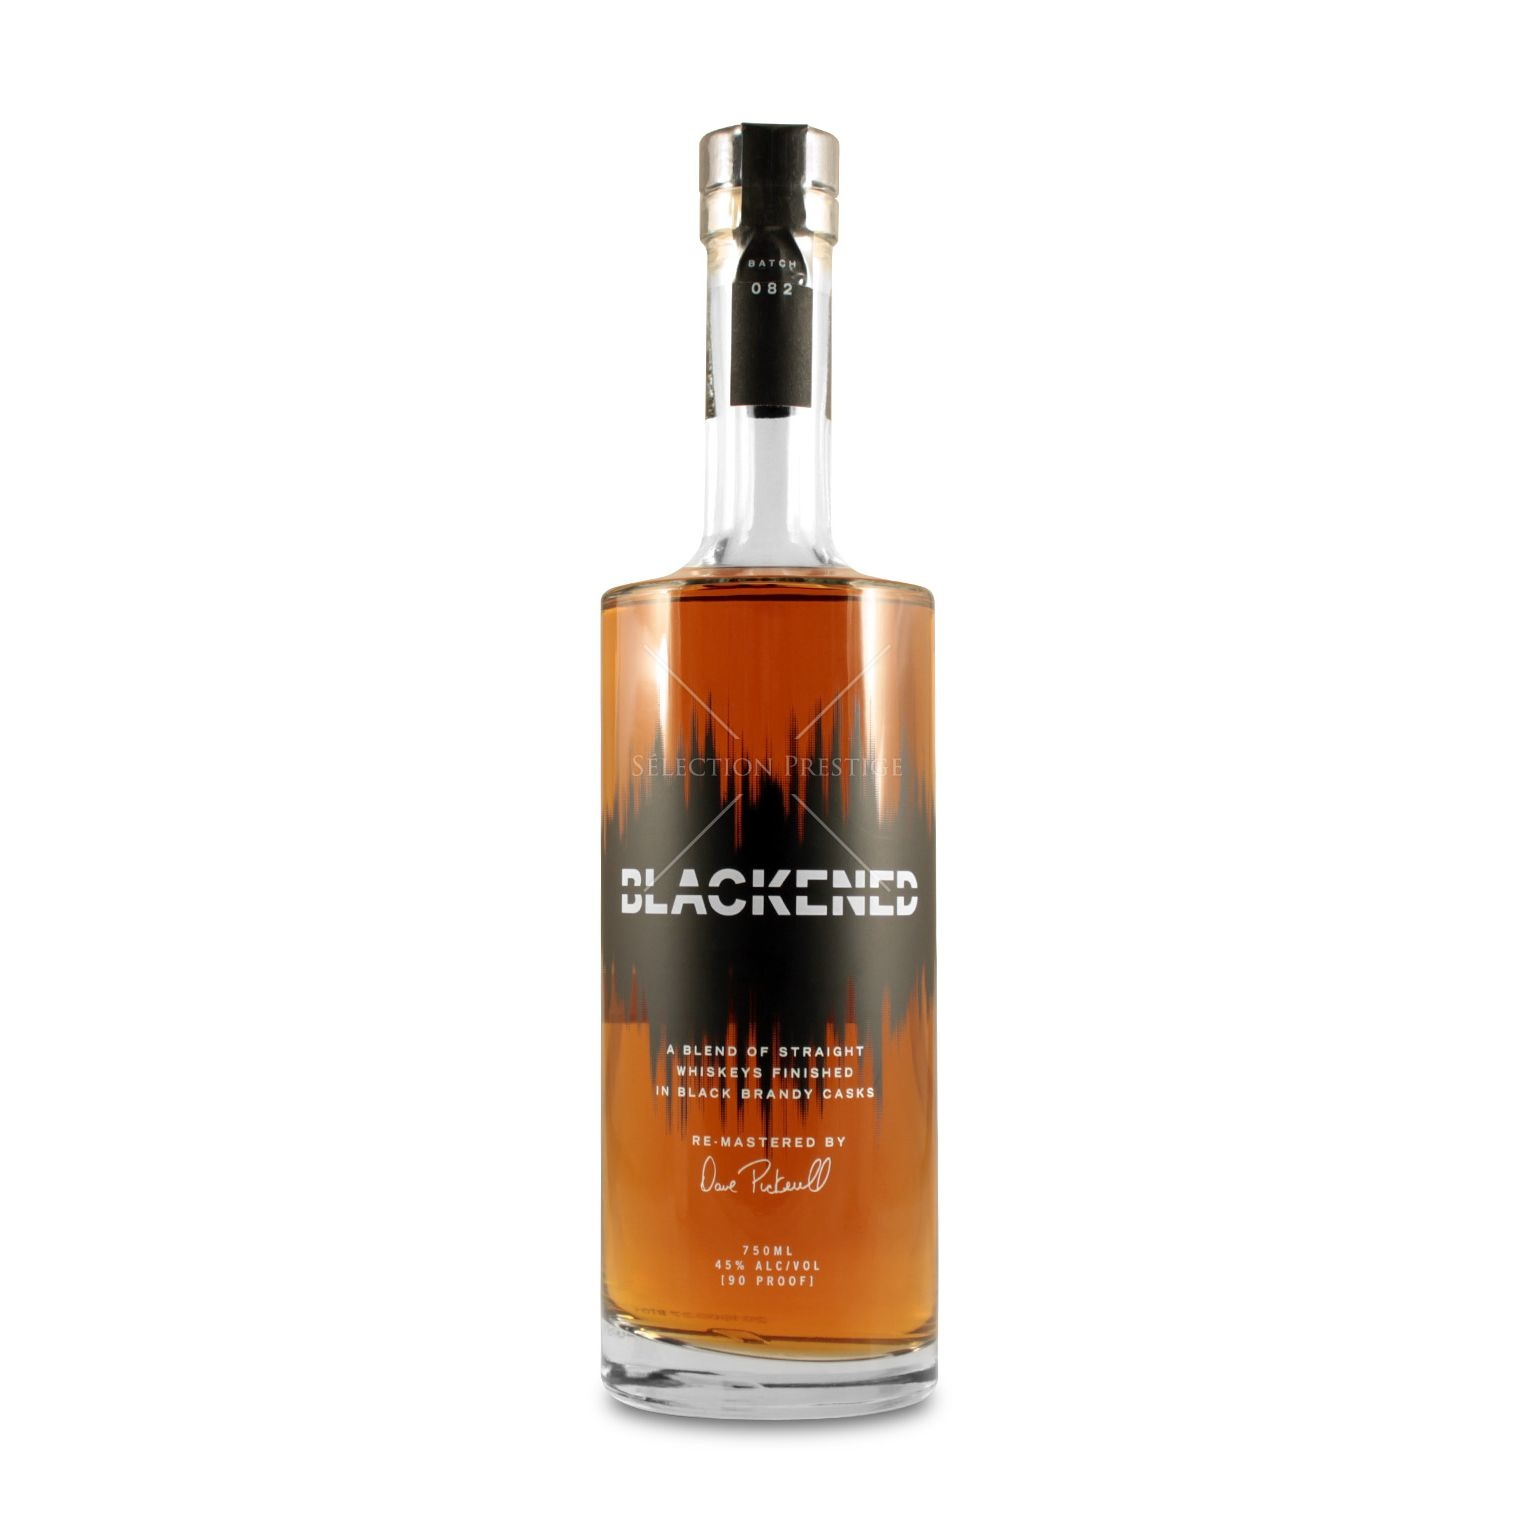 Blackened Whiskey Finished In Black Brandy Casks 750ml